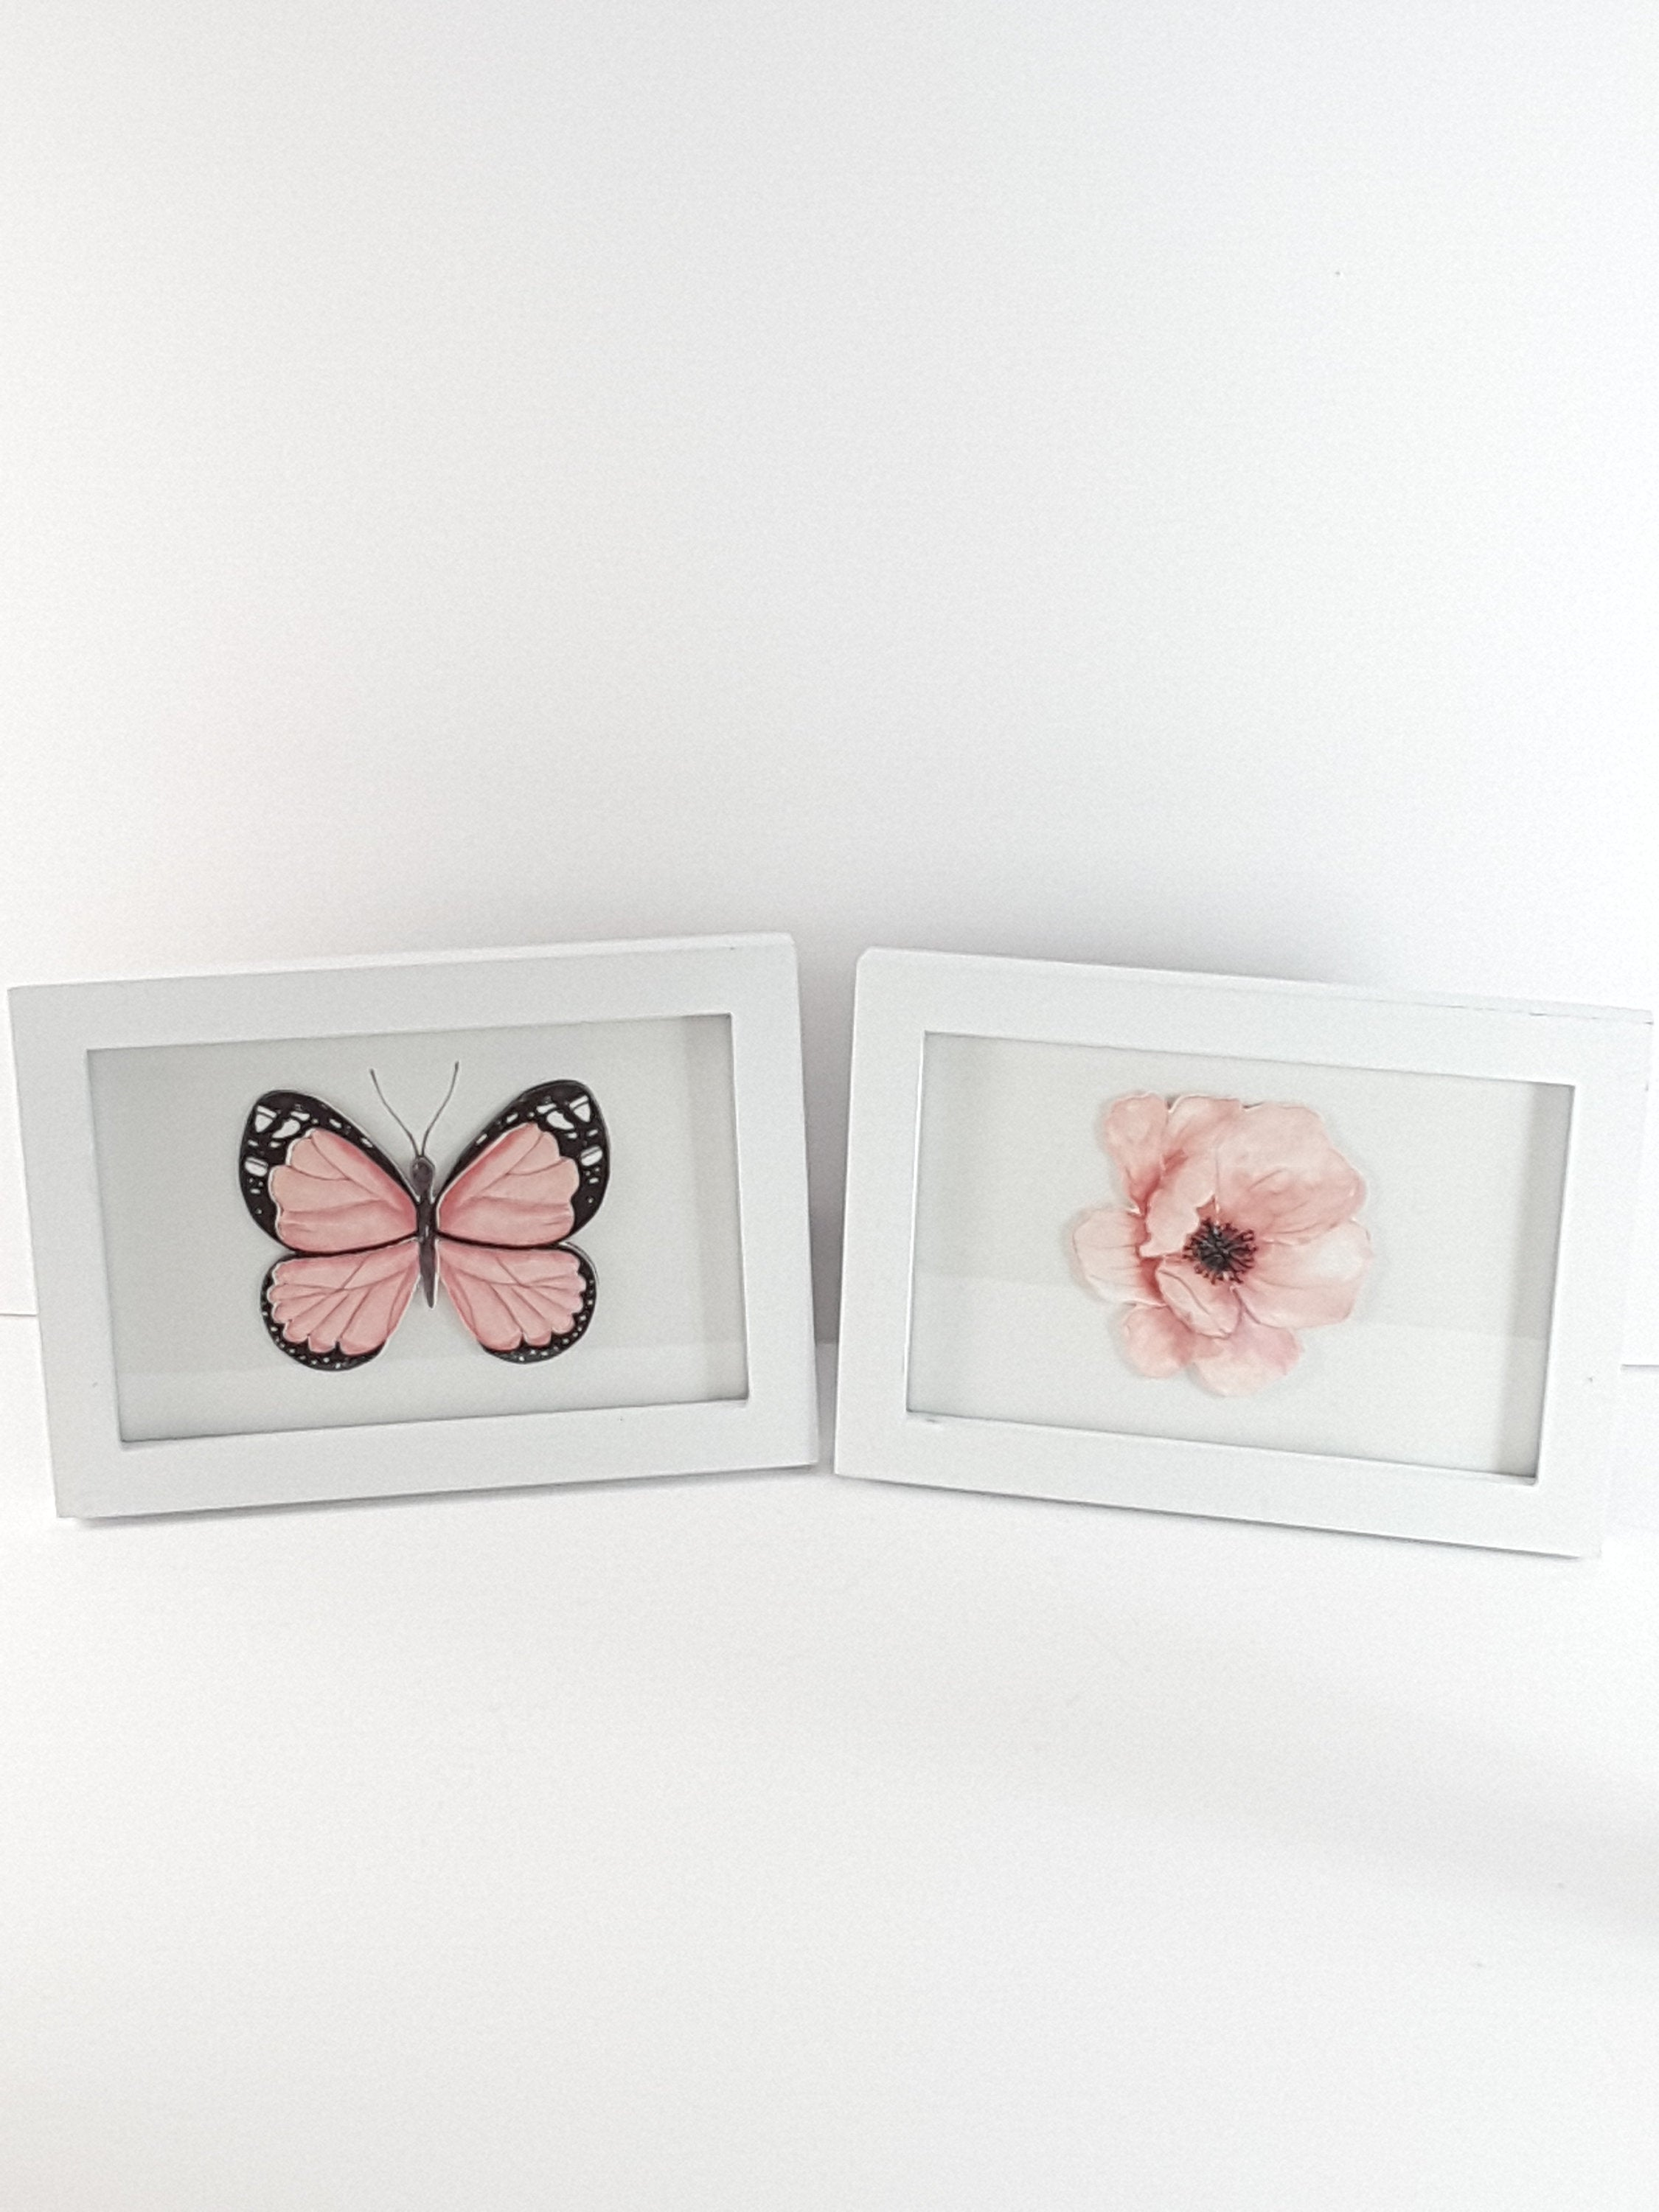 White Framed Set of Digital Prints, Pale Pink Flower and Butterfly